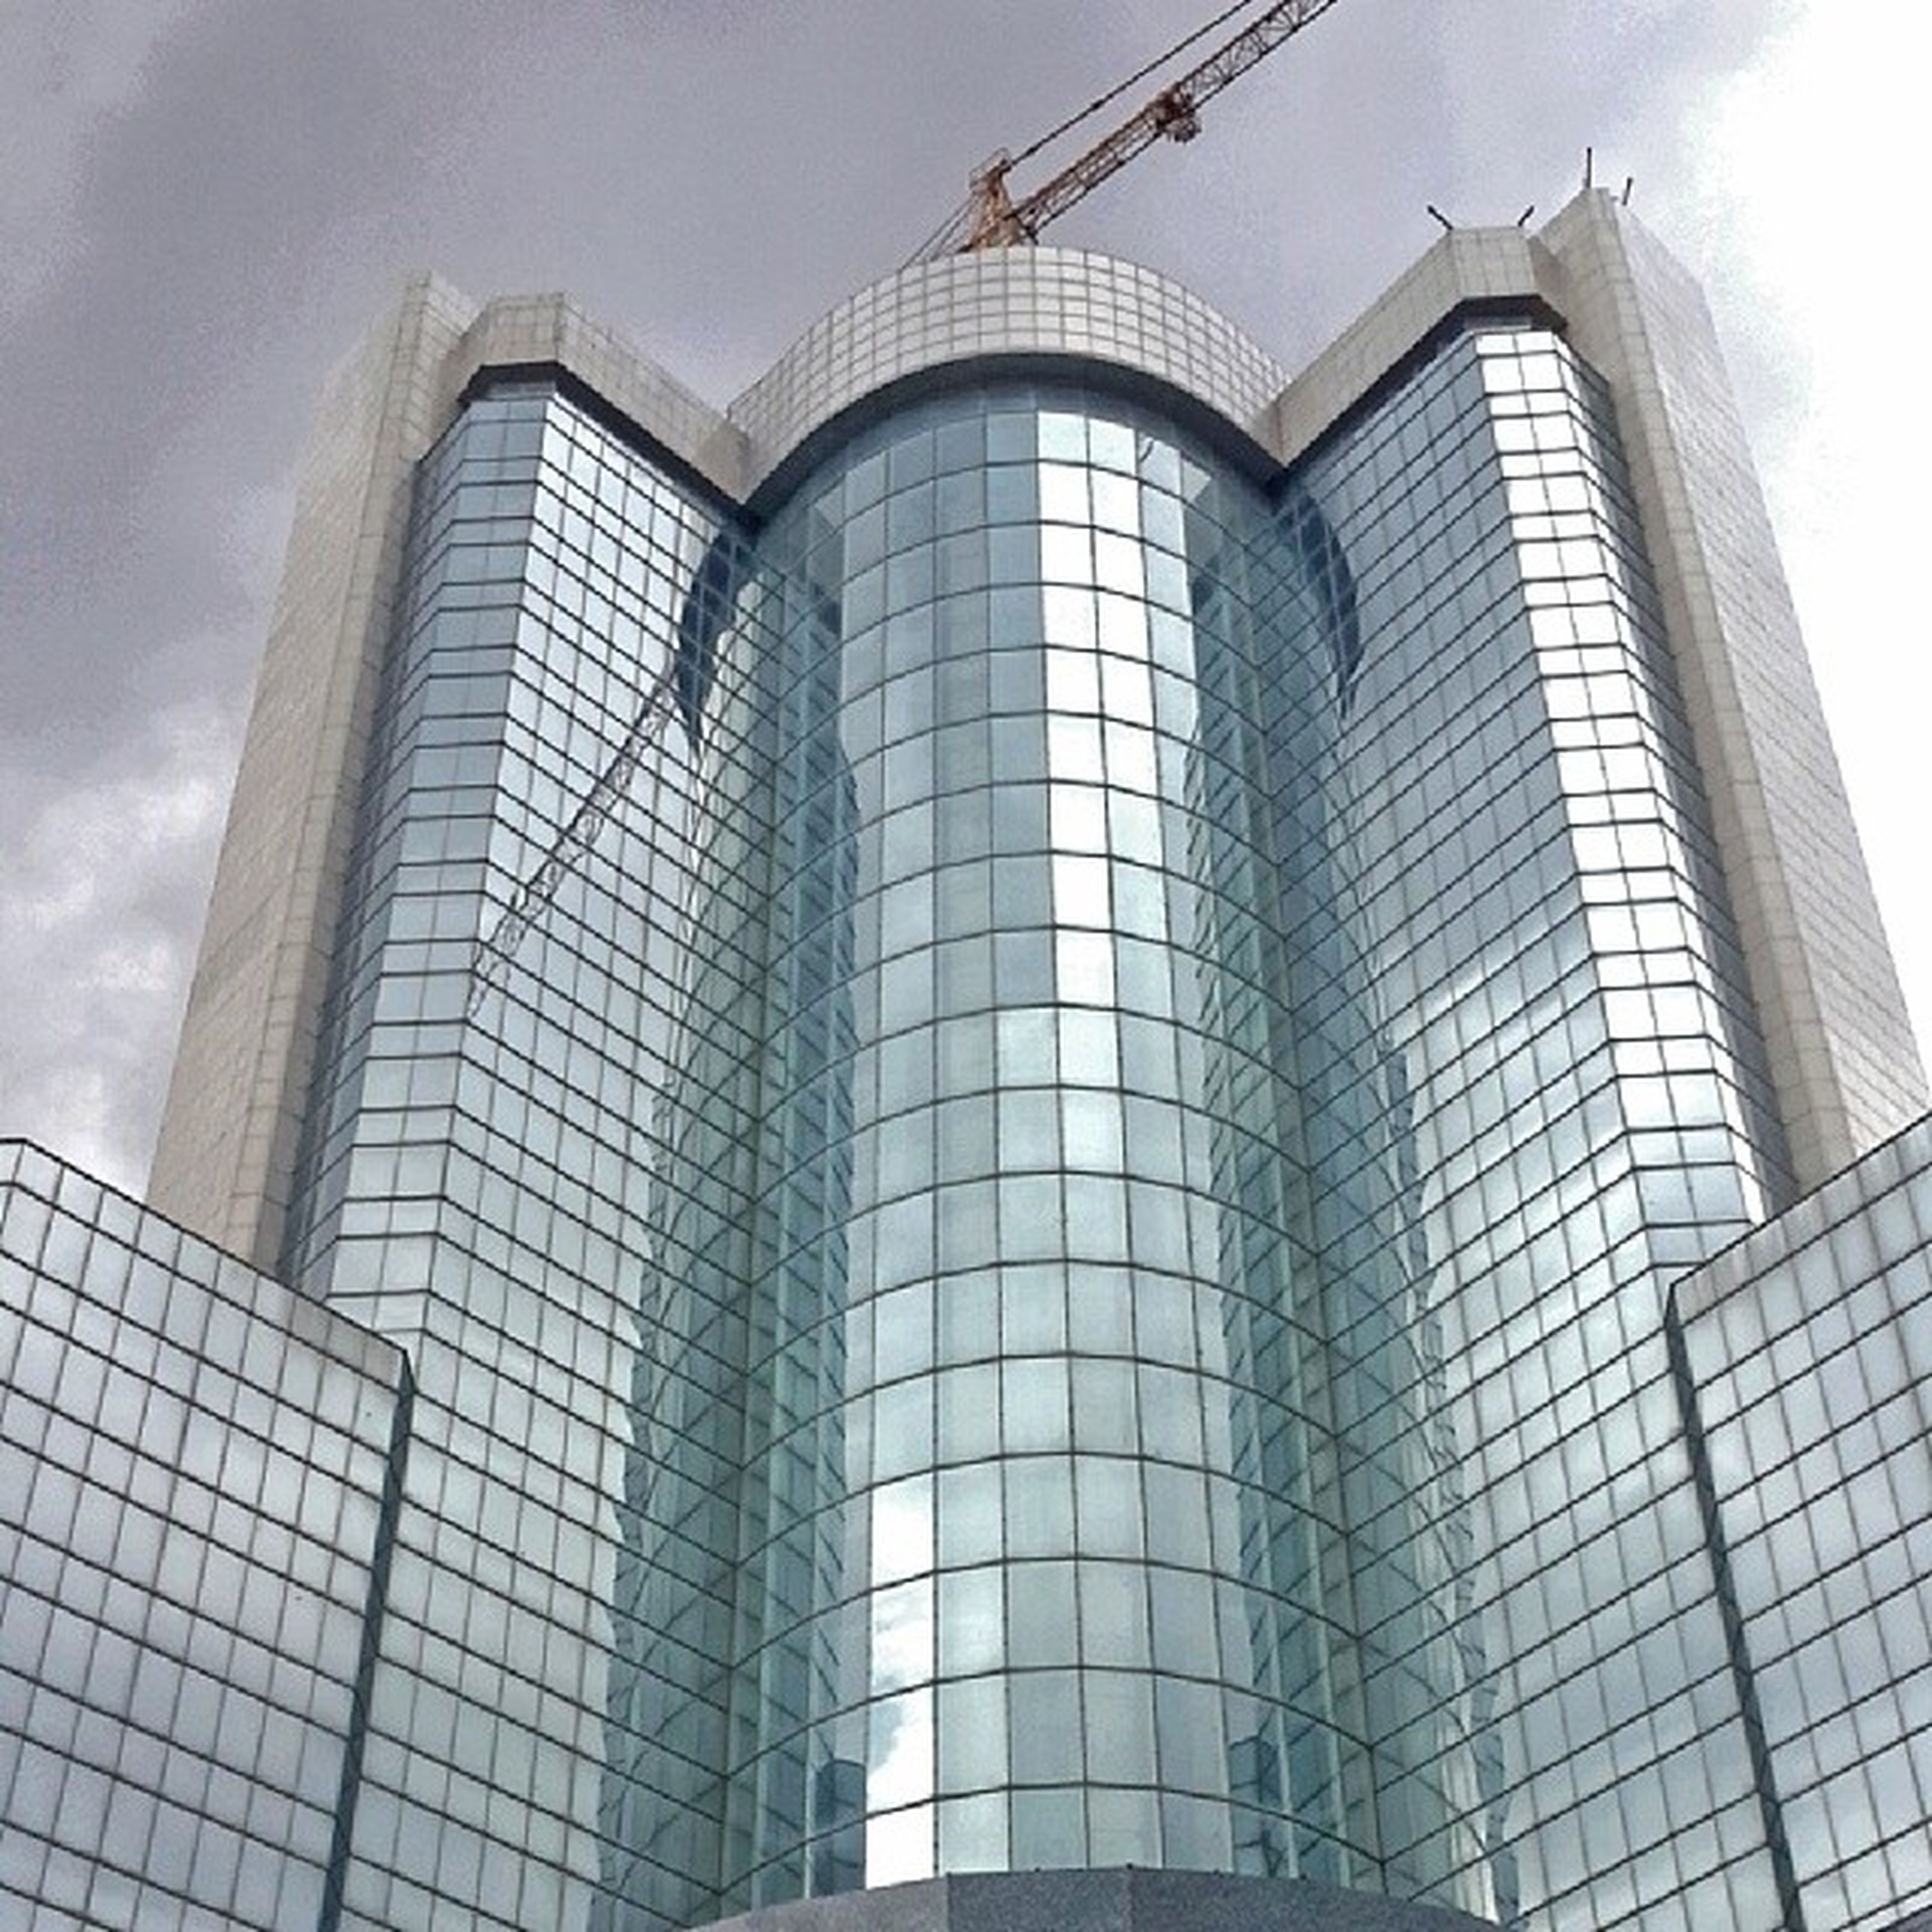 architecture, low angle view, built structure, building exterior, modern, office building, glass - material, sky, city, tall - high, skyscraper, building, window, reflection, tower, architectural feature, no people, day, cloud - sky, outdoors